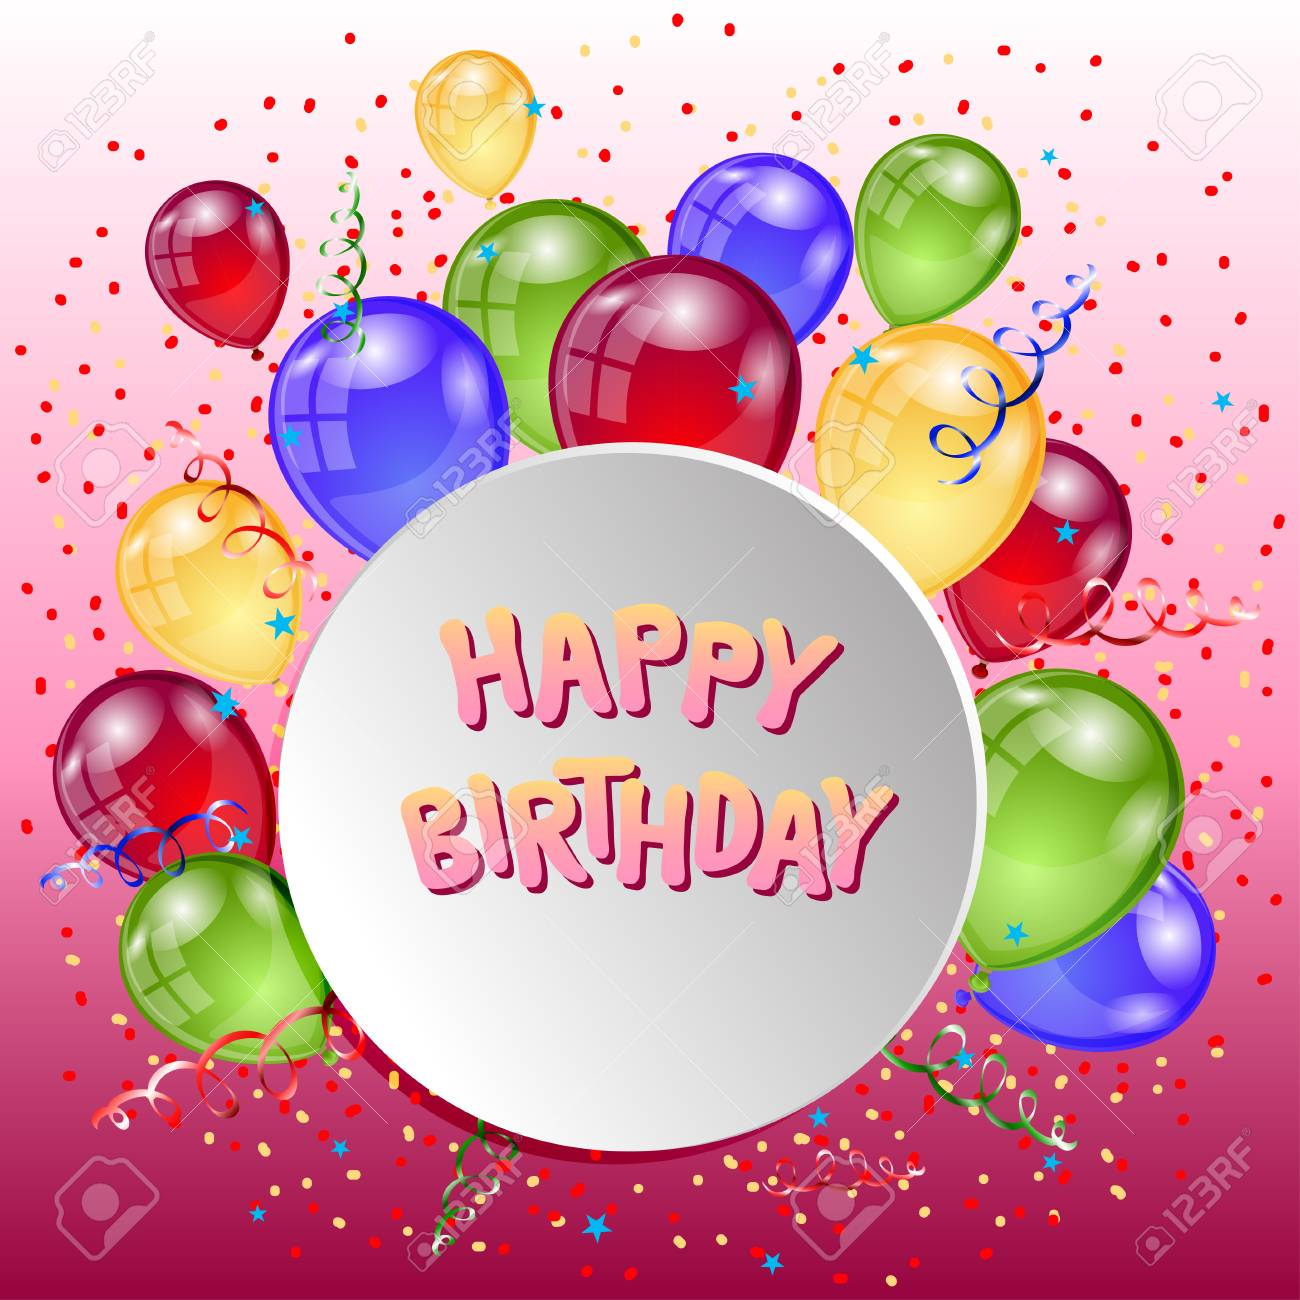 Happy Birthday Greeting Card Background With Balloons Holiday